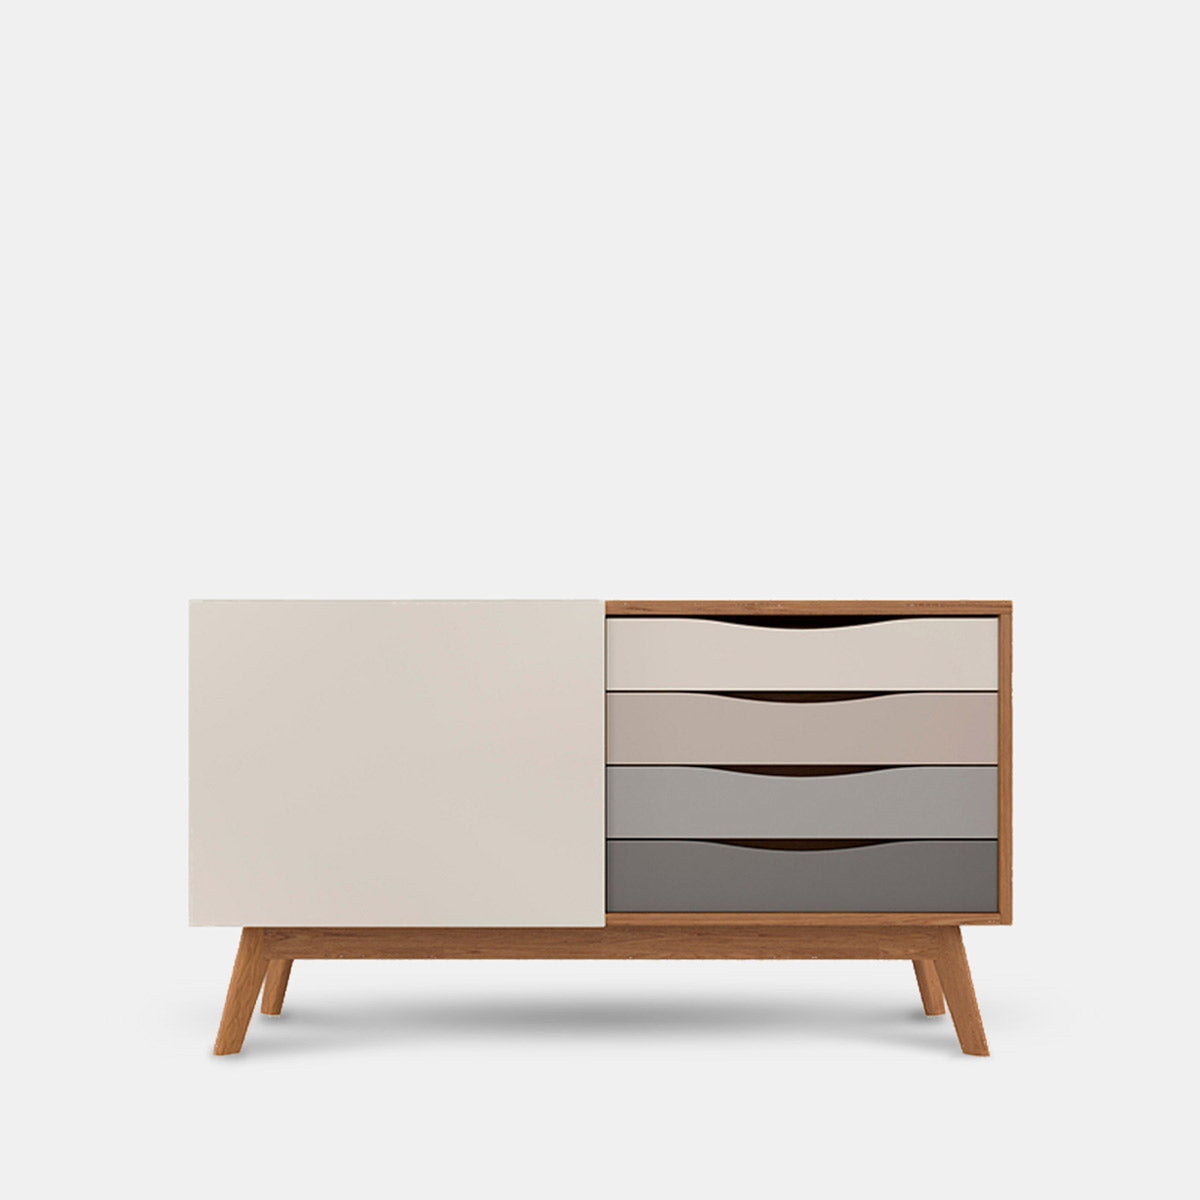 dakota modern sideboard grey oak 4 drawers scandi style (banner image)